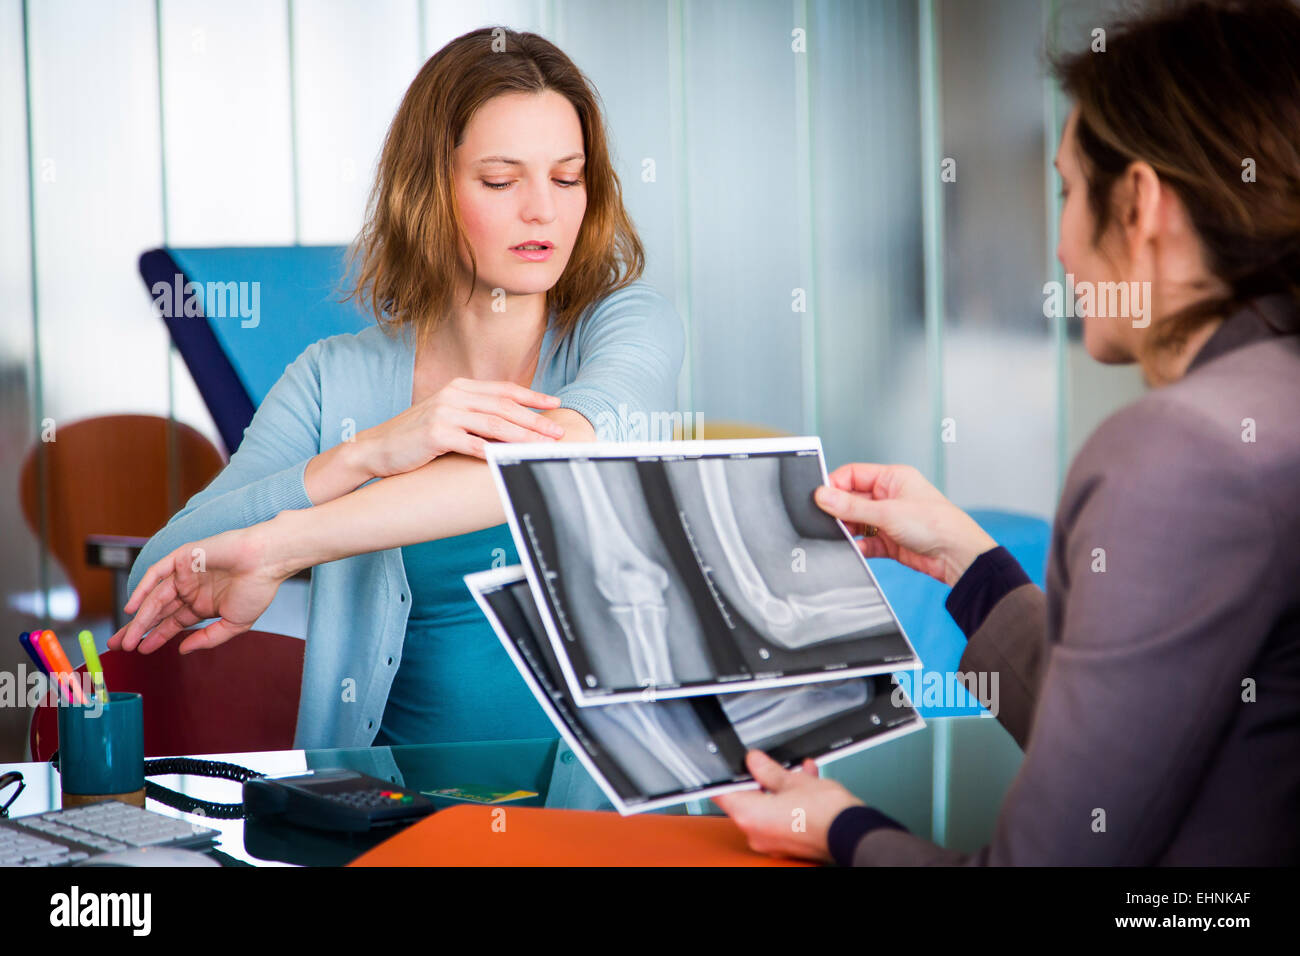 Doctor examining and commenting patient's elbow X-ray. - Stock Image